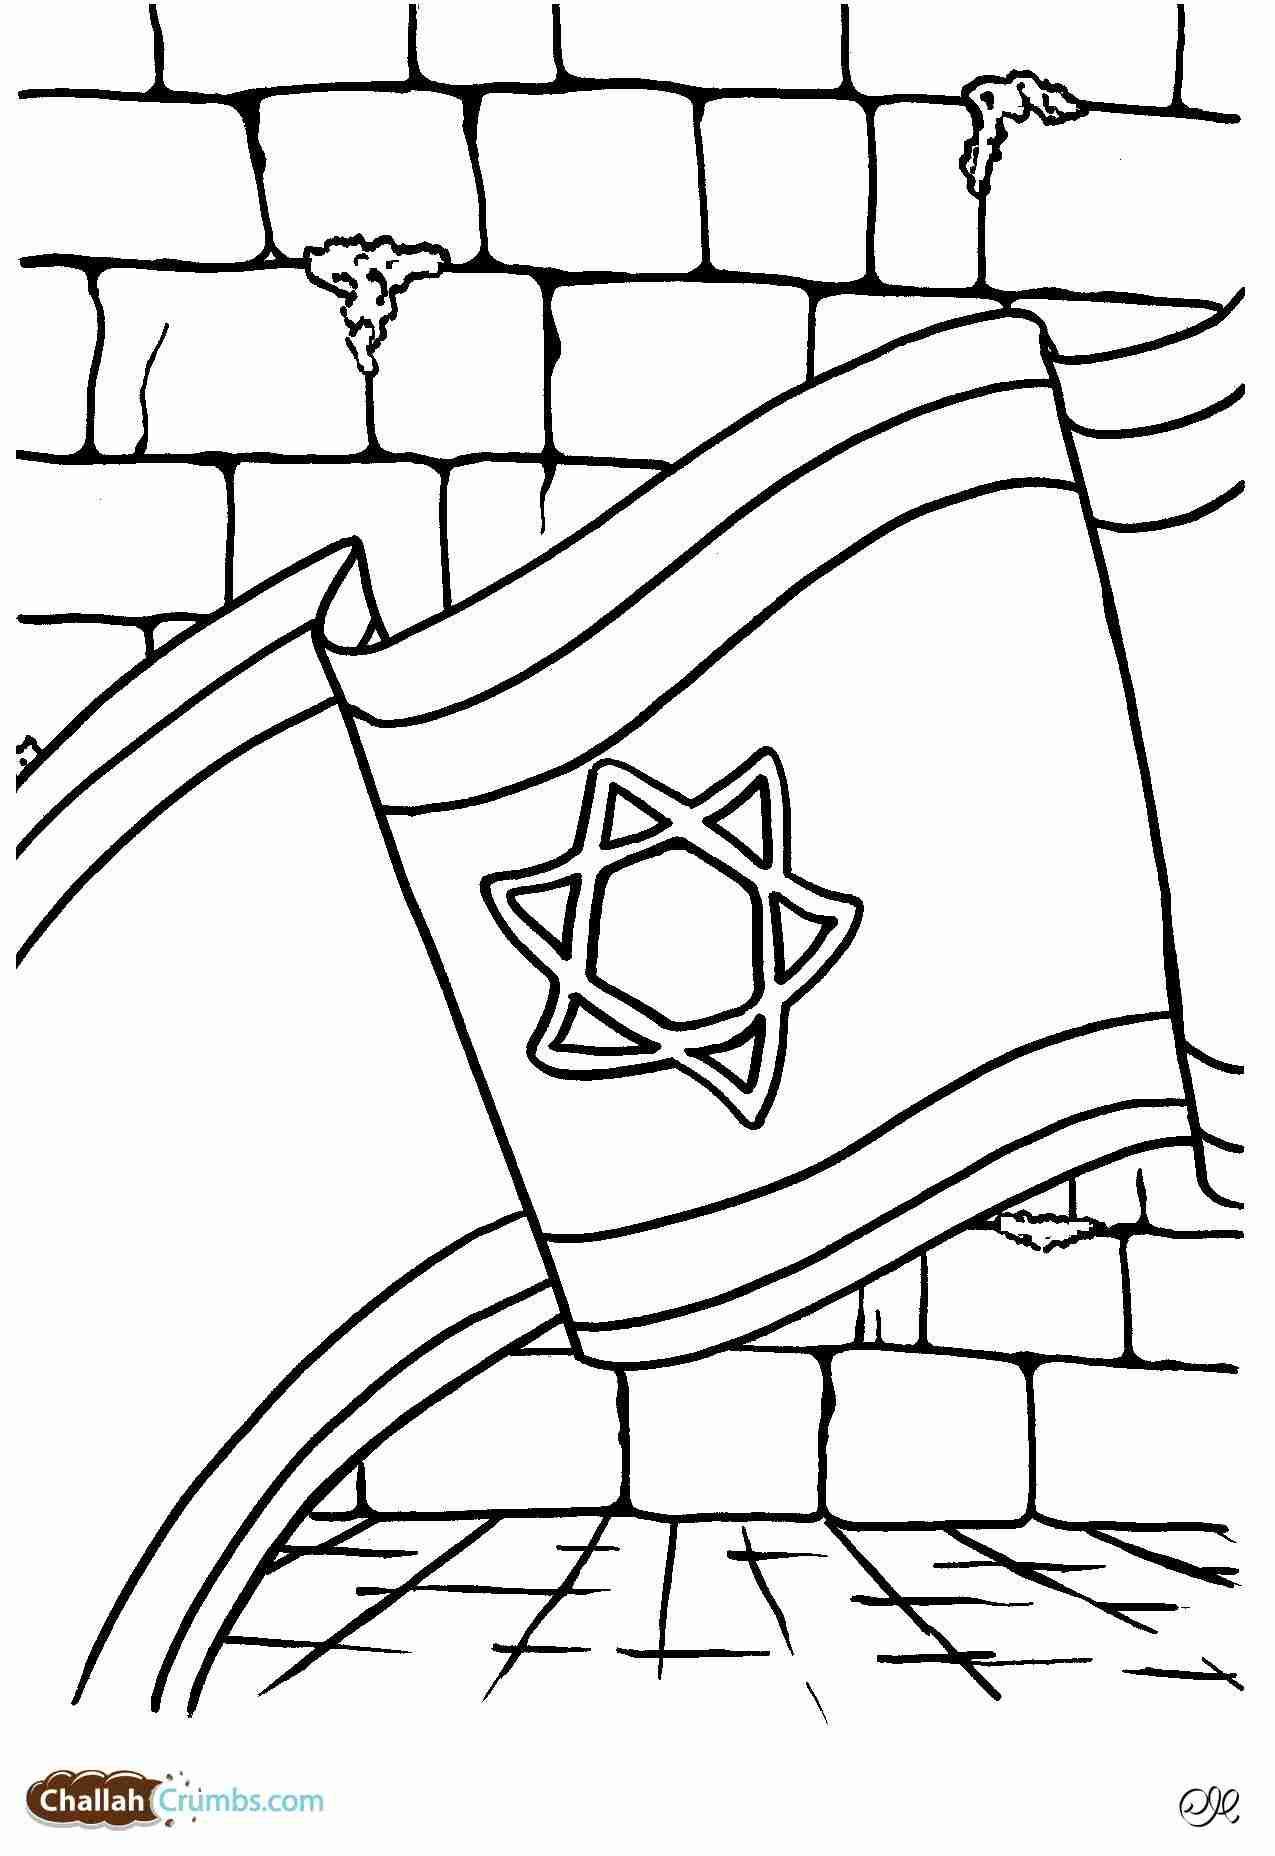 iceland flag coloring page iceland coloring download iceland coloring for free 2019 flag iceland coloring page